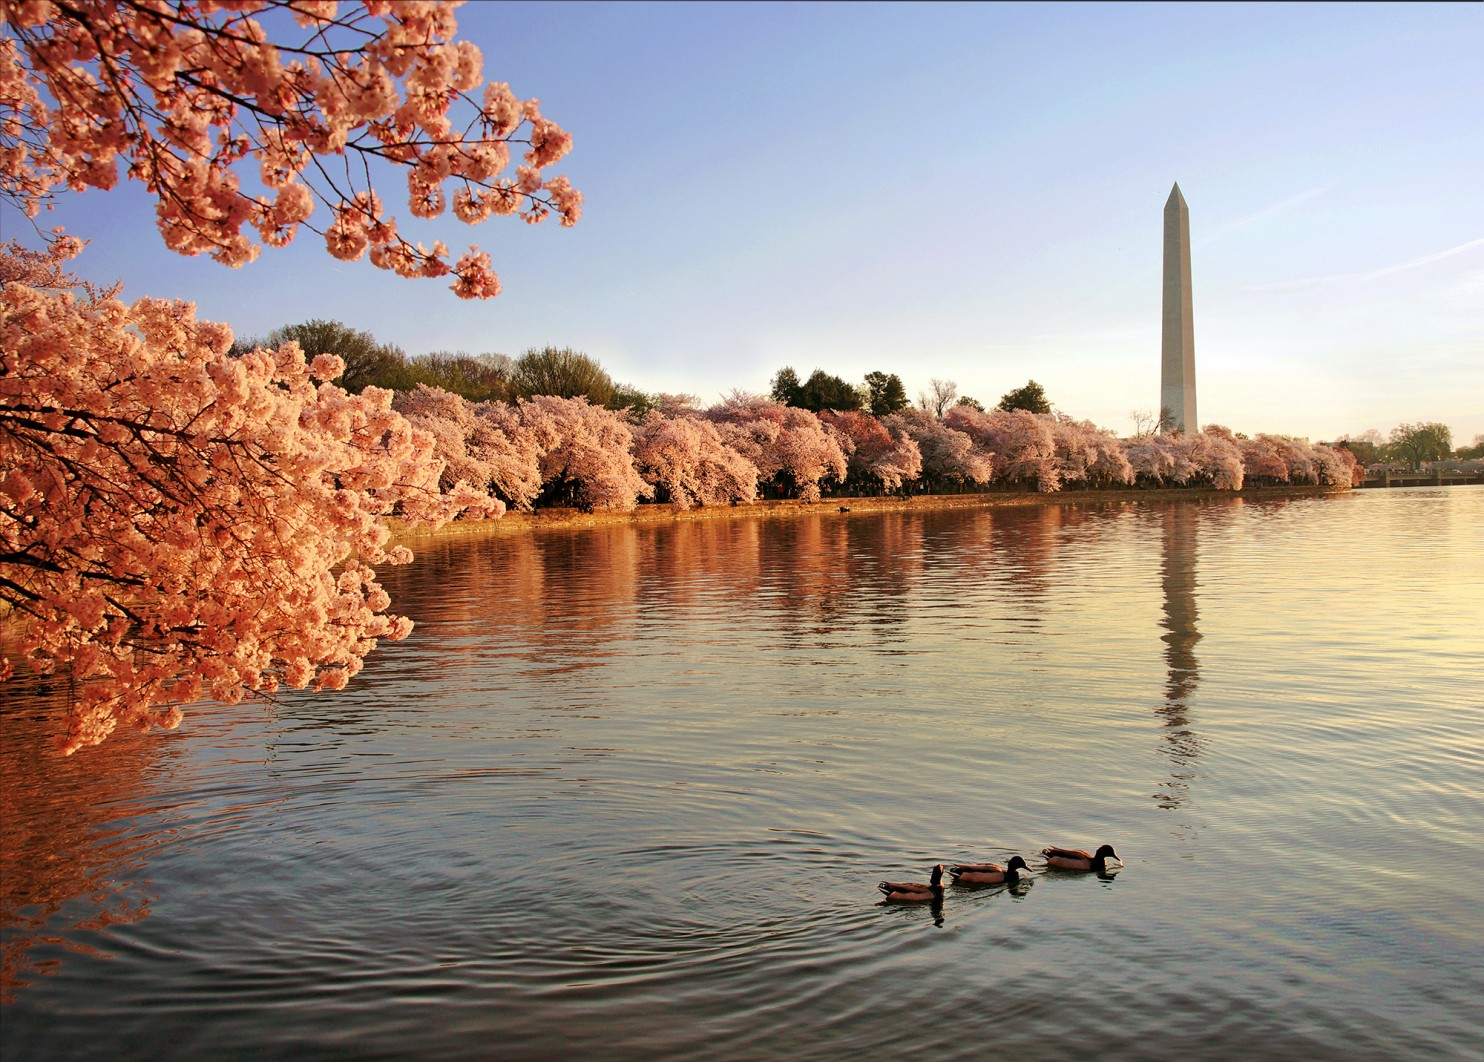 Ducks on the Tidal Basin with Cherry Blossoms in full bloom, March 26, 2016. Photo credit: Kevin Ambrose